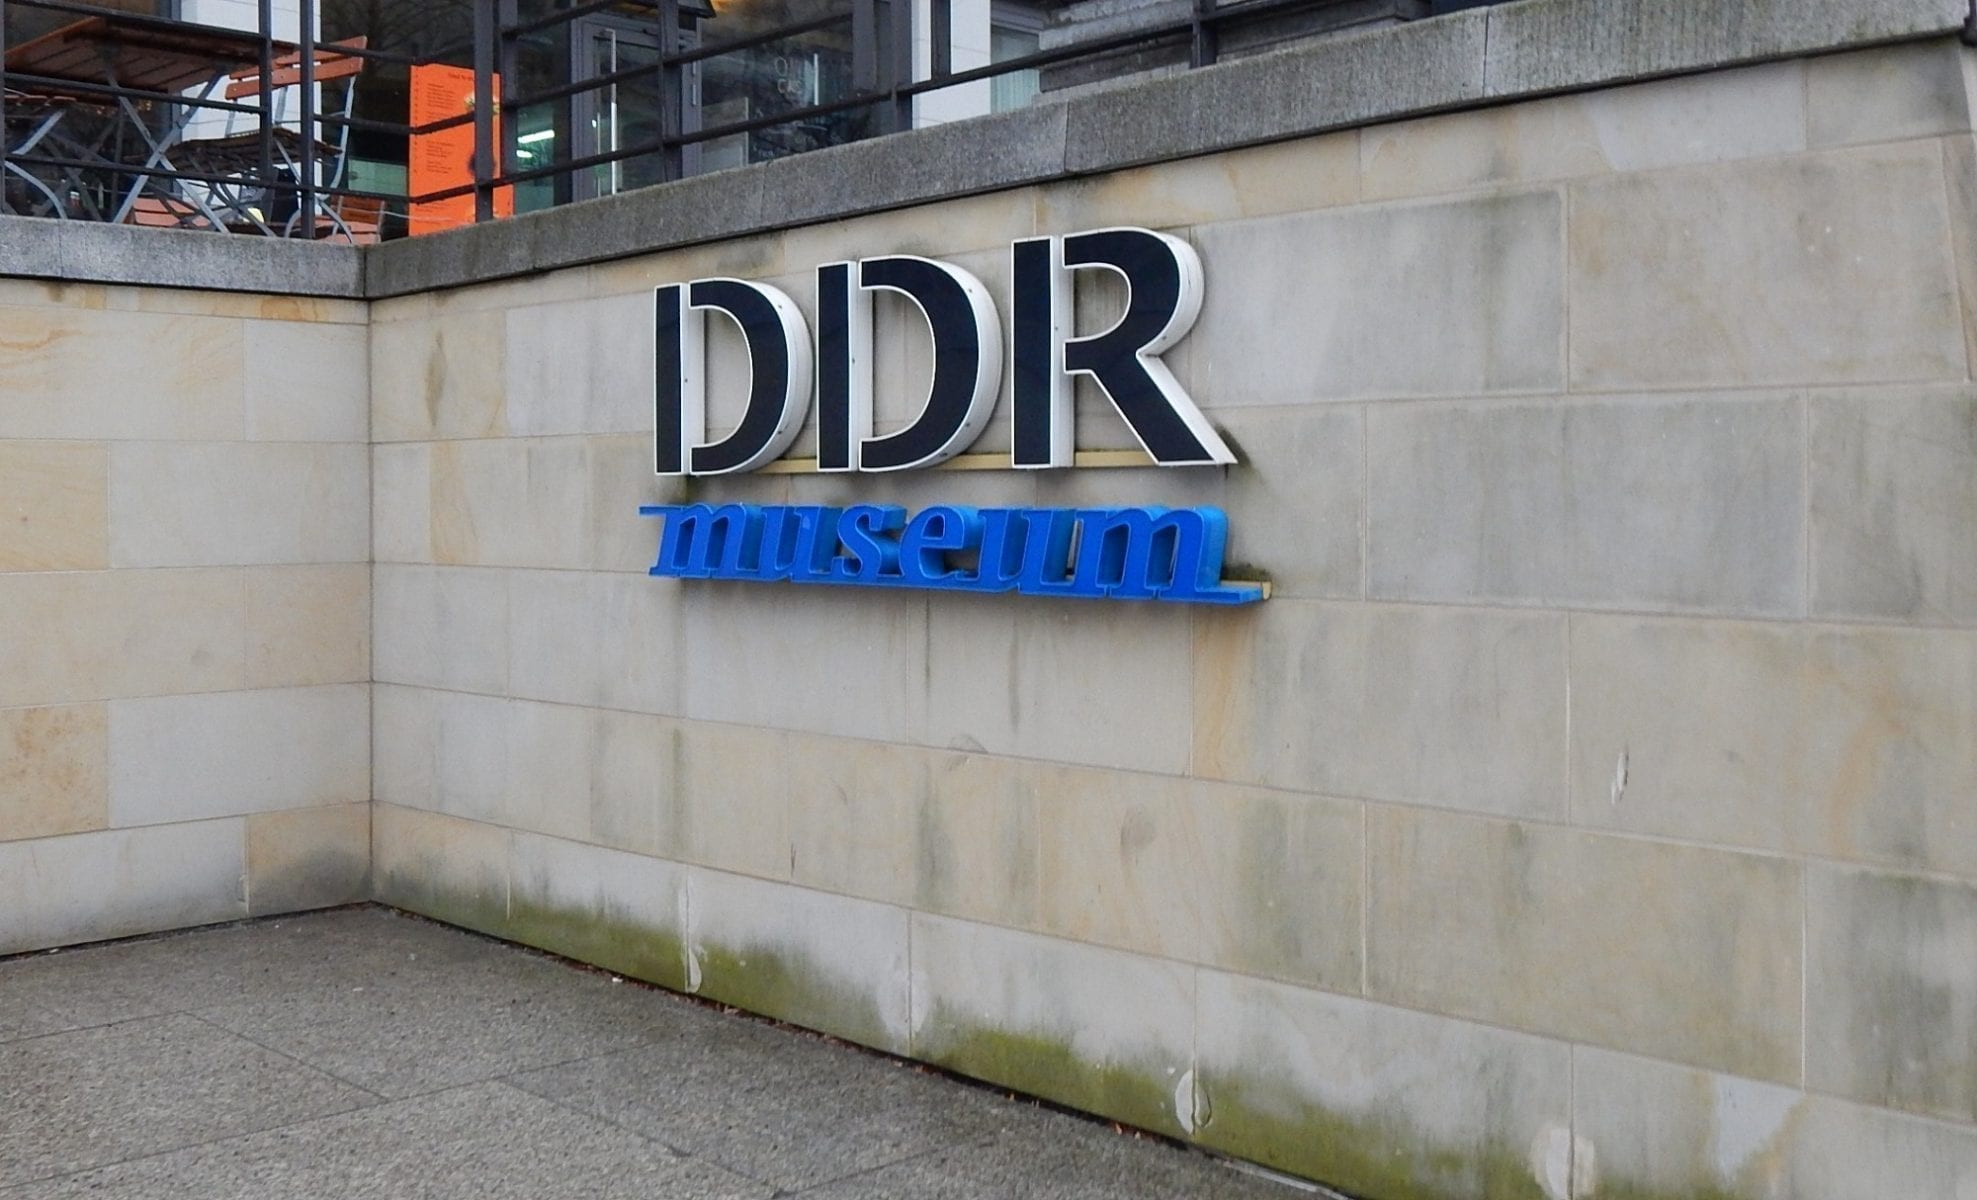 Visit the DDR Museum Berlin- An Interactive Museum of East Germany